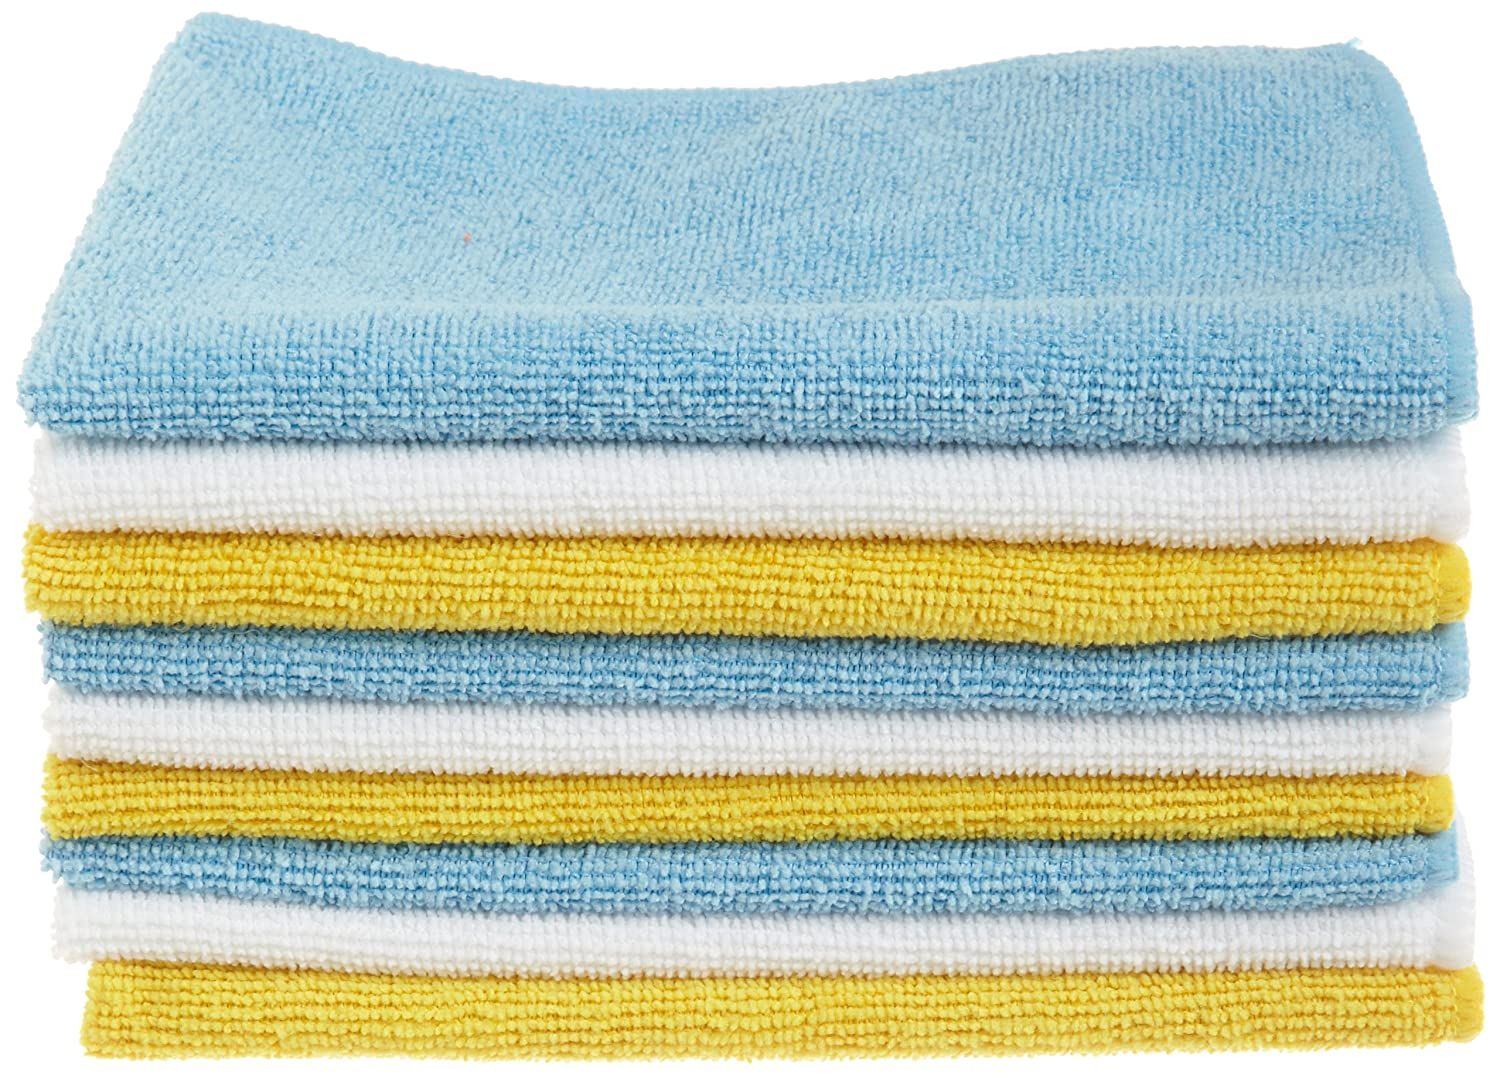 $48.80(was $69.99) AmazonBasics Microfiber Cleaning Cloth